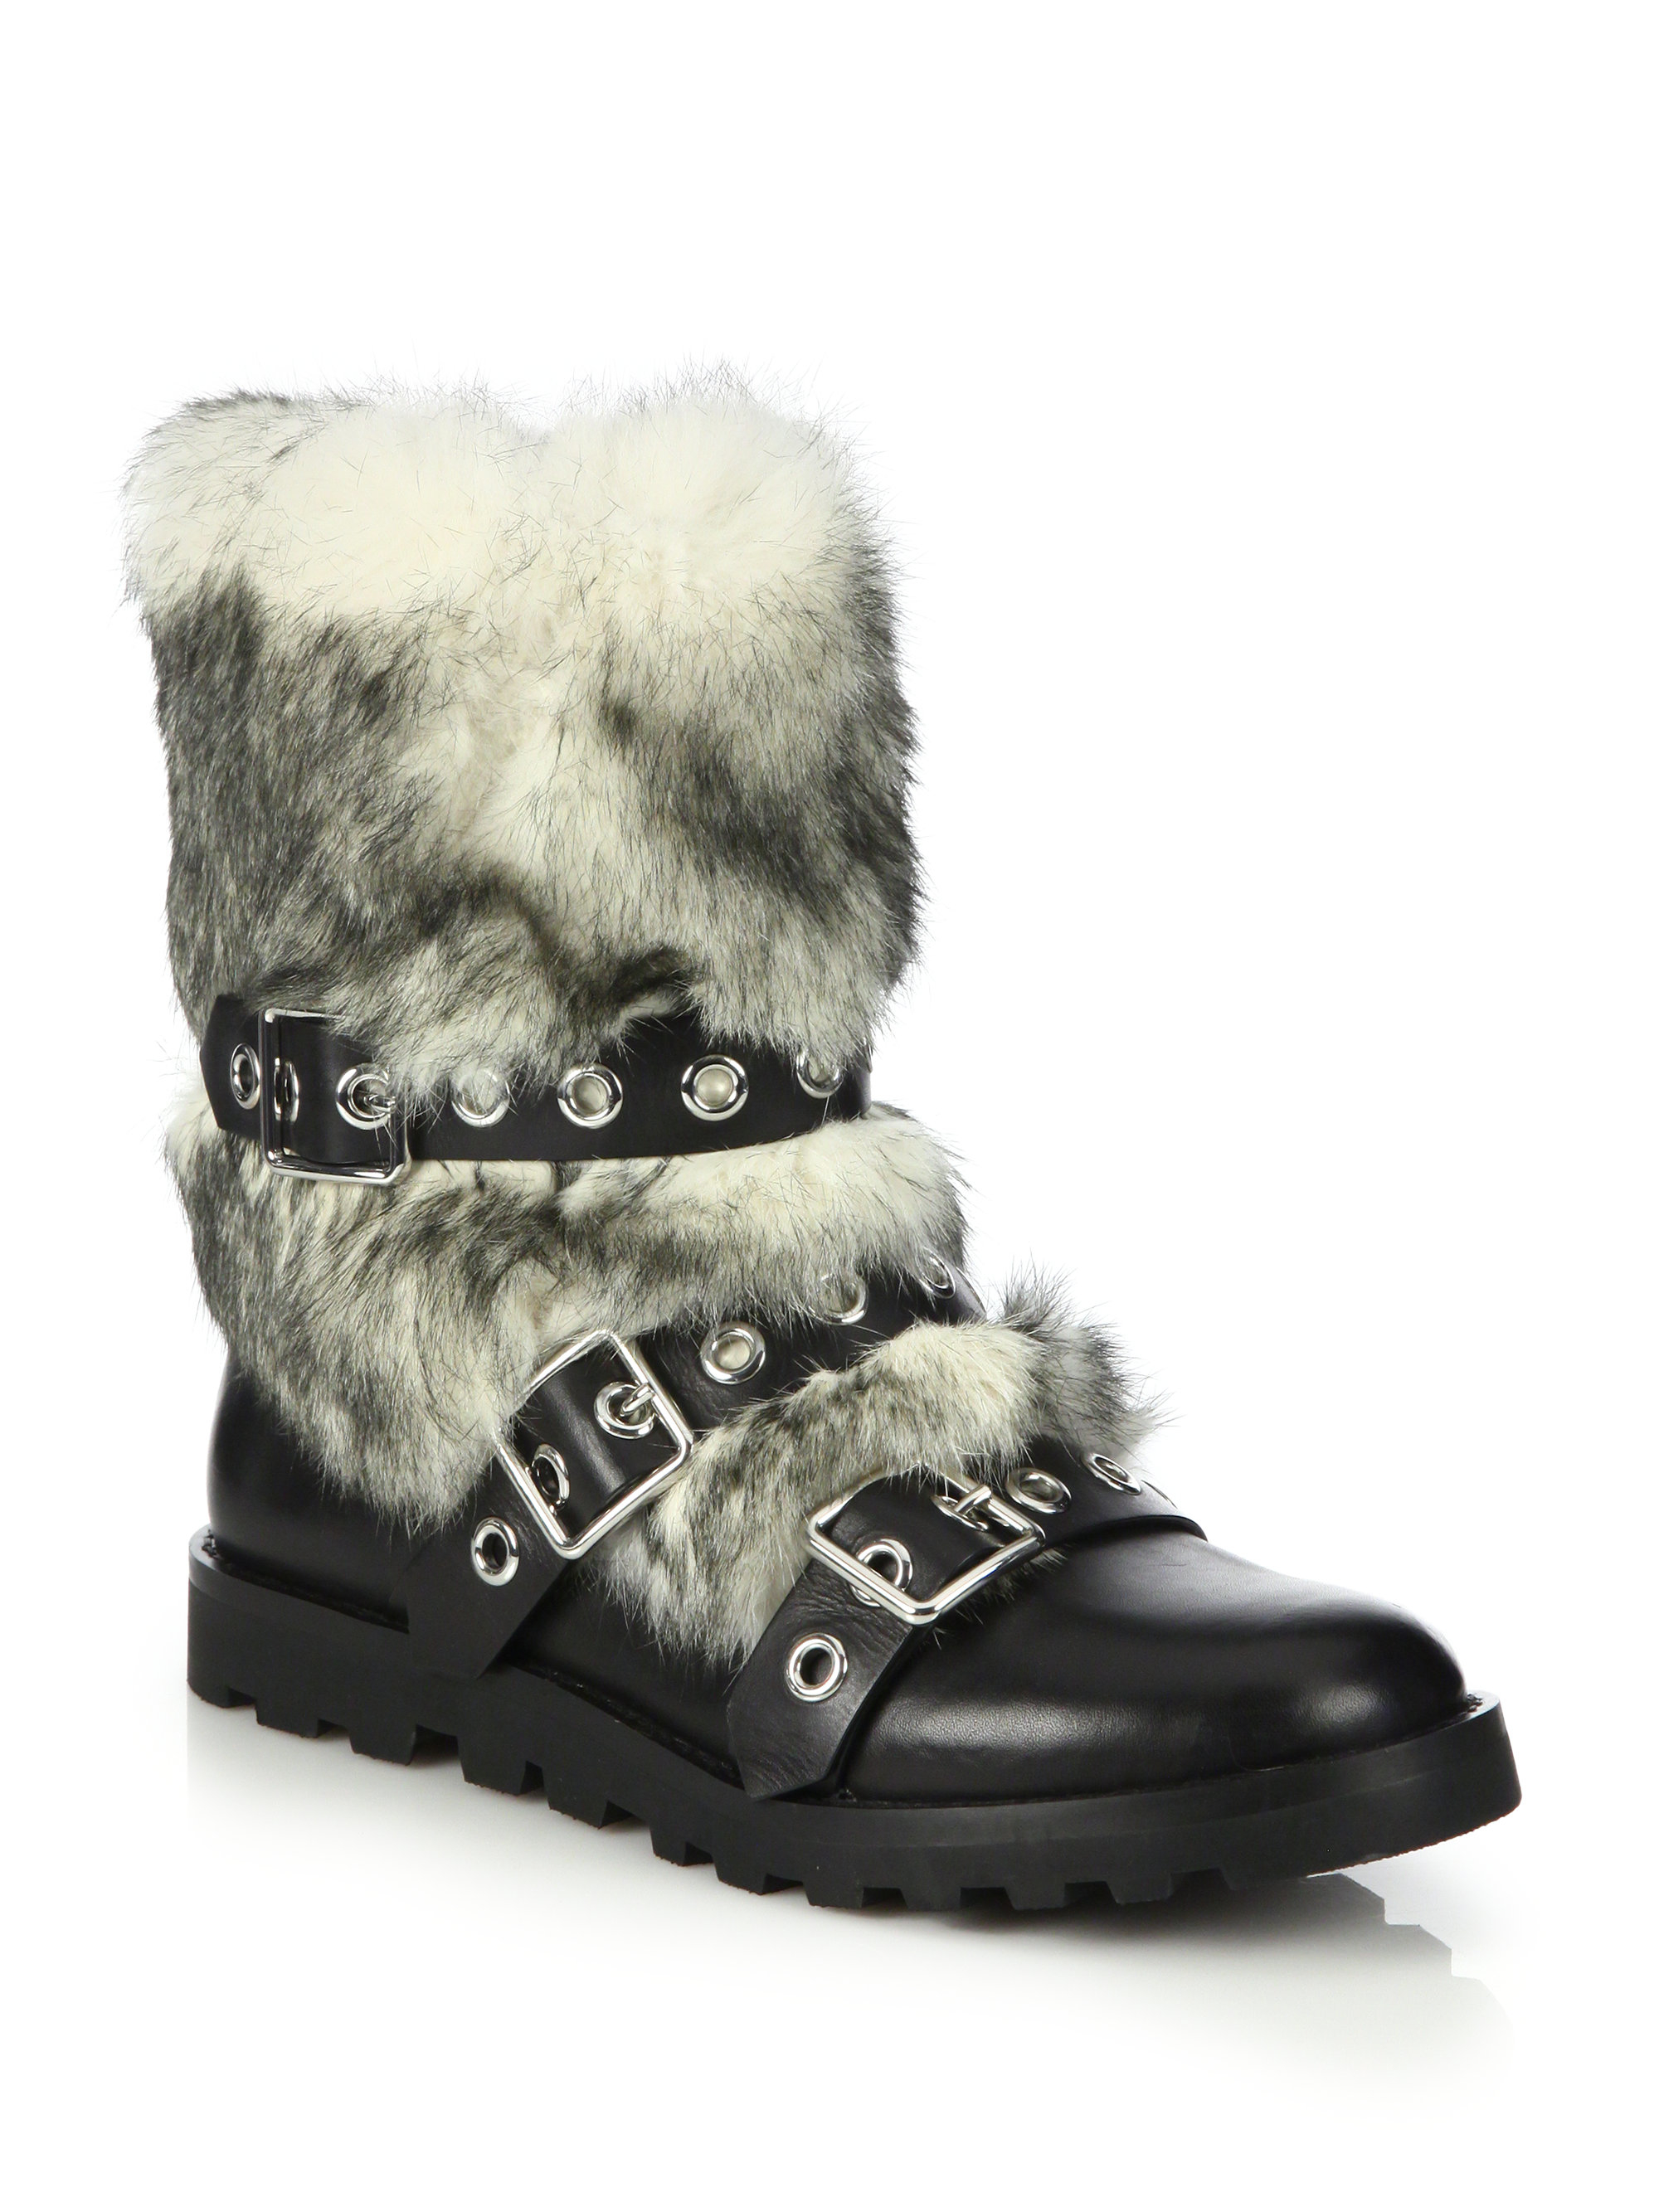 Marc Jacobs Fur-Trimmed Suede Boots good selling cheap price sale official site outlet lowest price HRpdcP